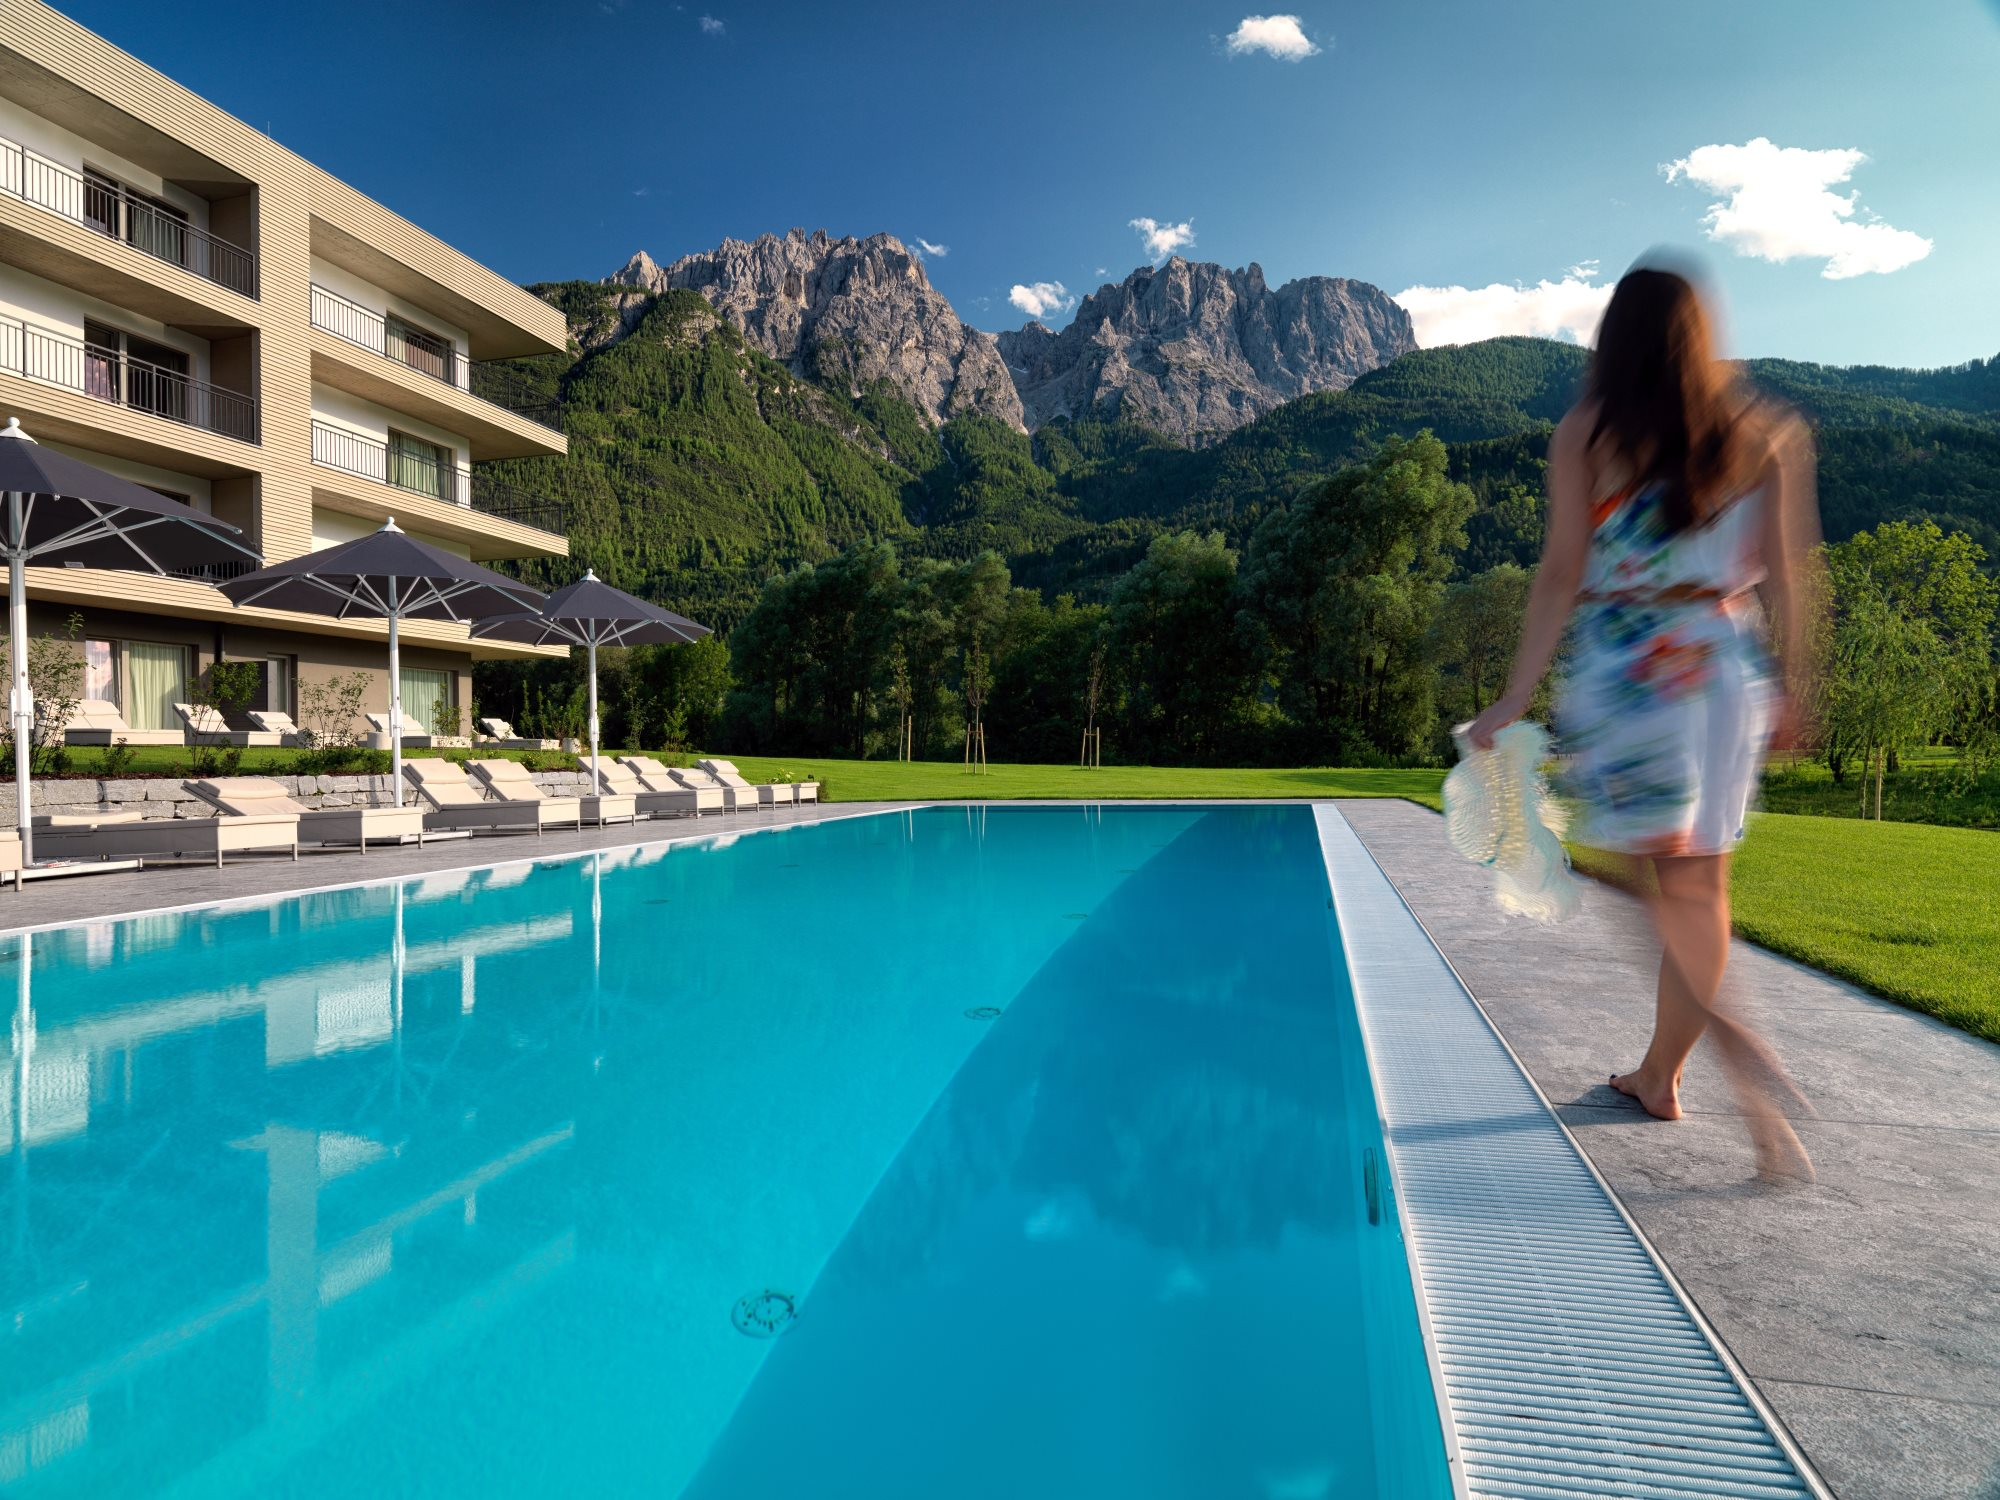 Dolomitengolf Suites - beheizter Pool mit Panoramablick.